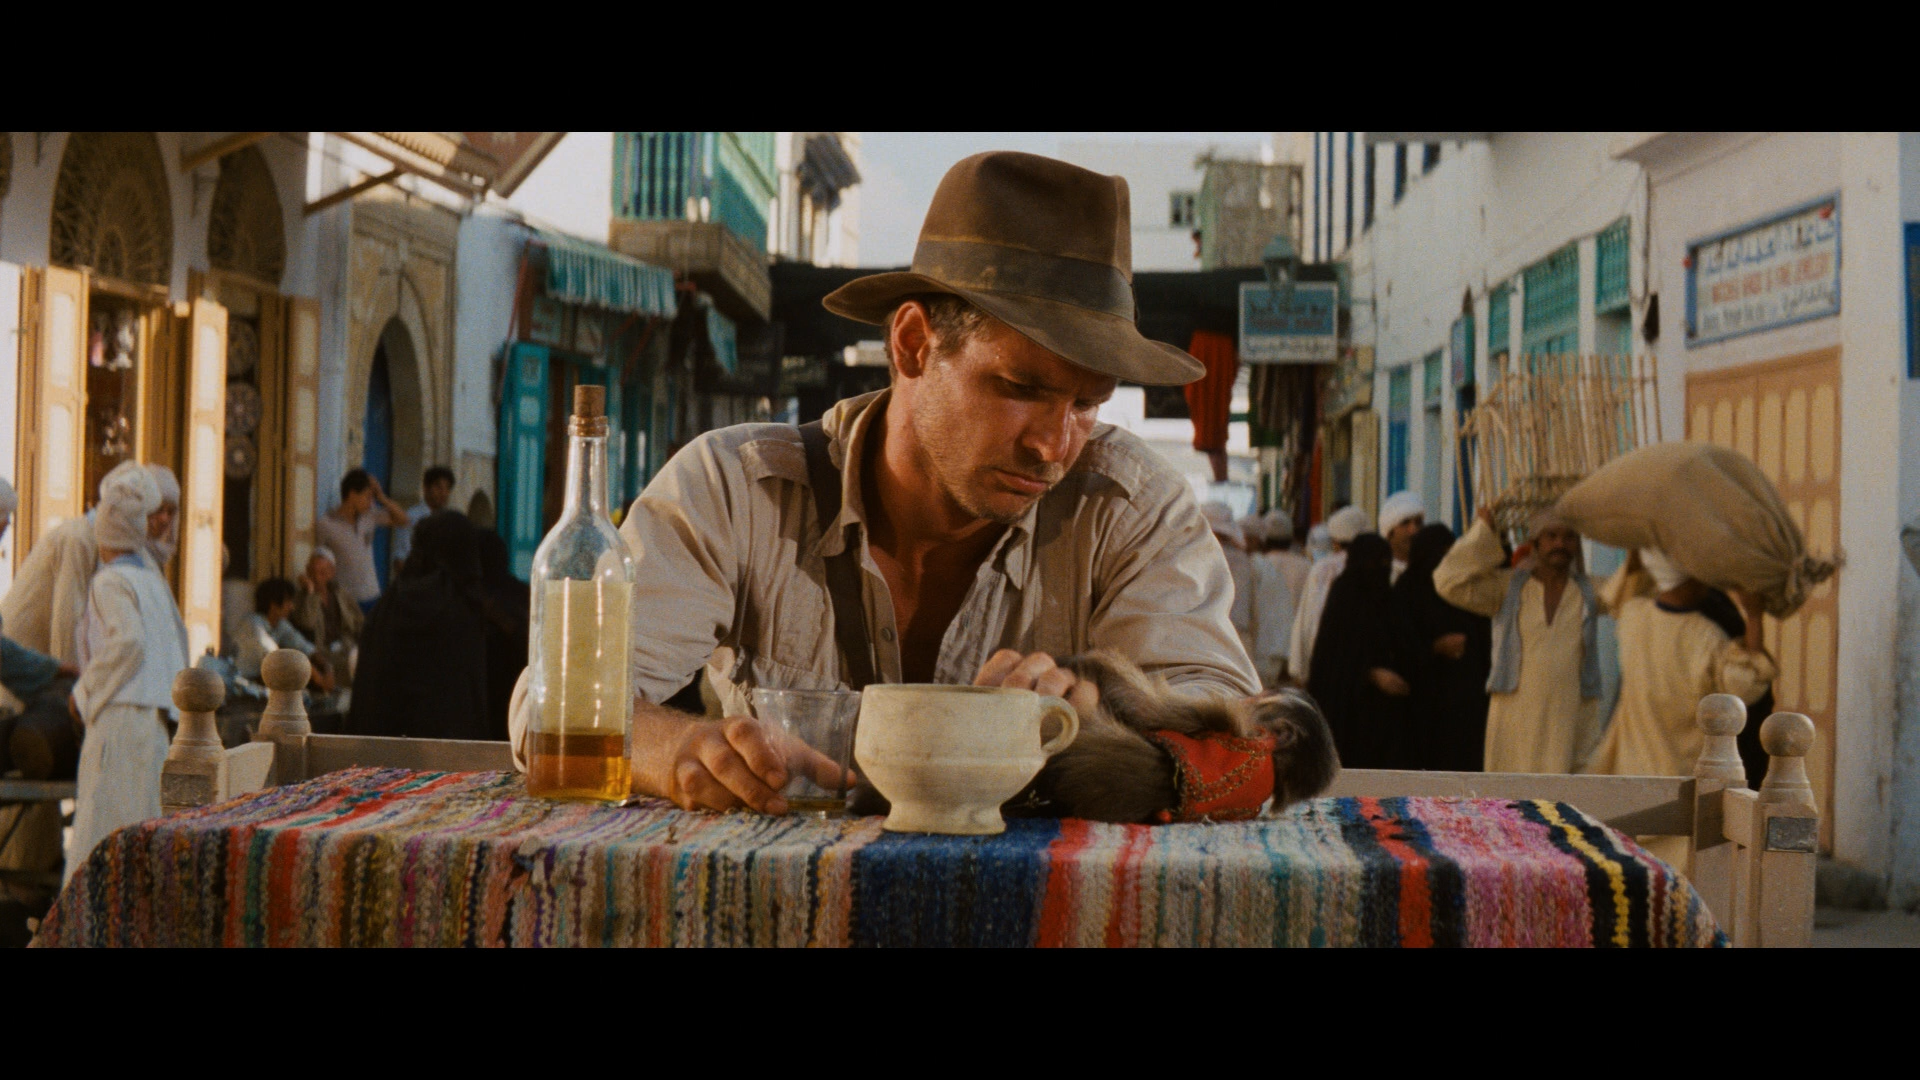 Raiders of the Lost Ark HD Wallpaper Background Image 1920x1080